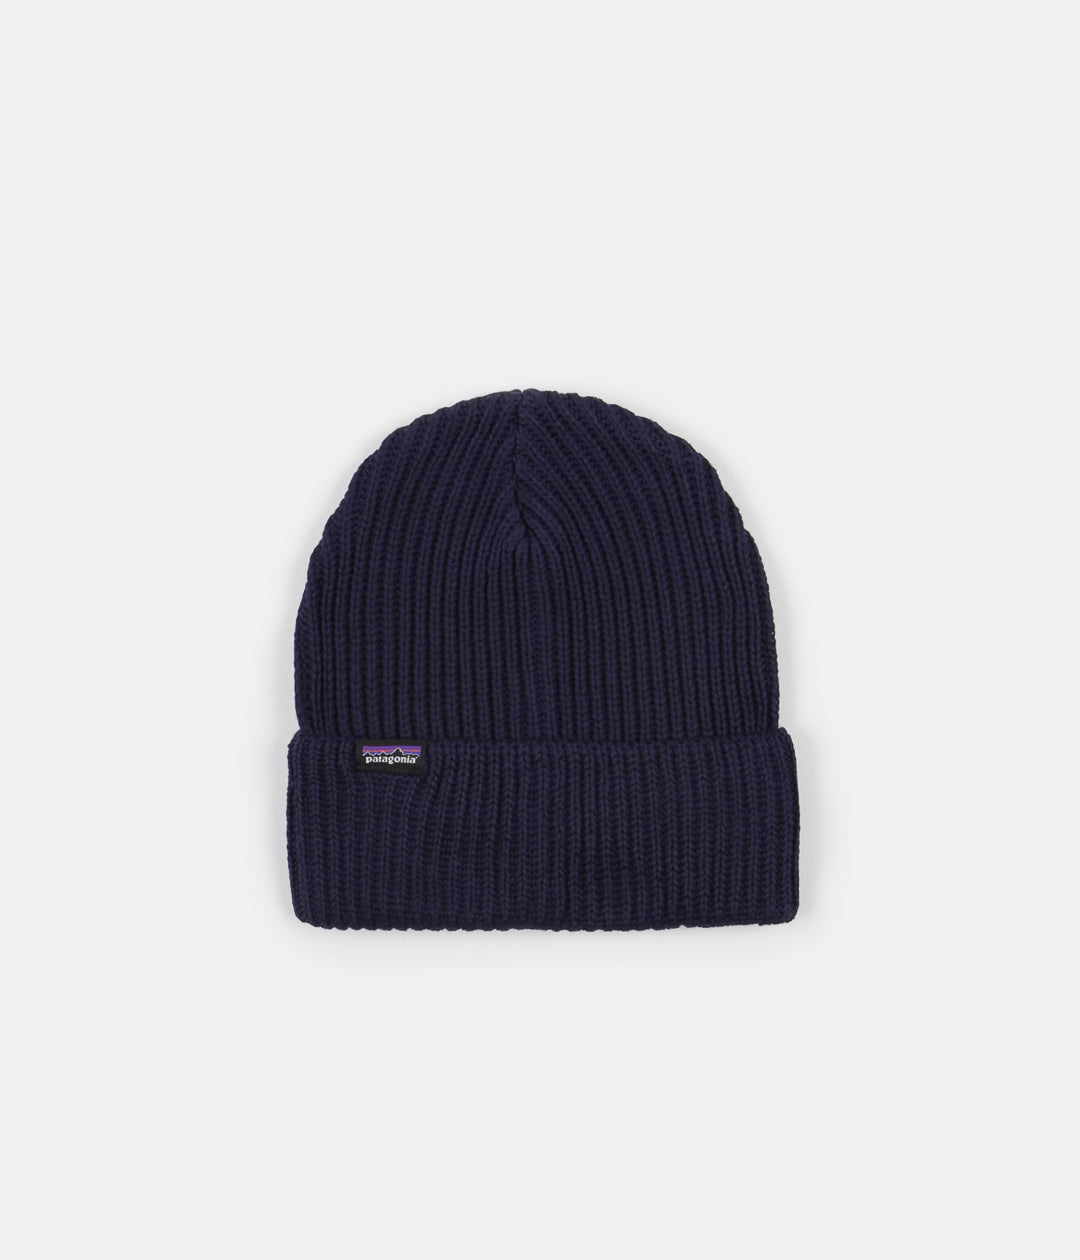 Patagonia Fisherman s Rolled Beanie - Navy Blue  6bc8777f8d3